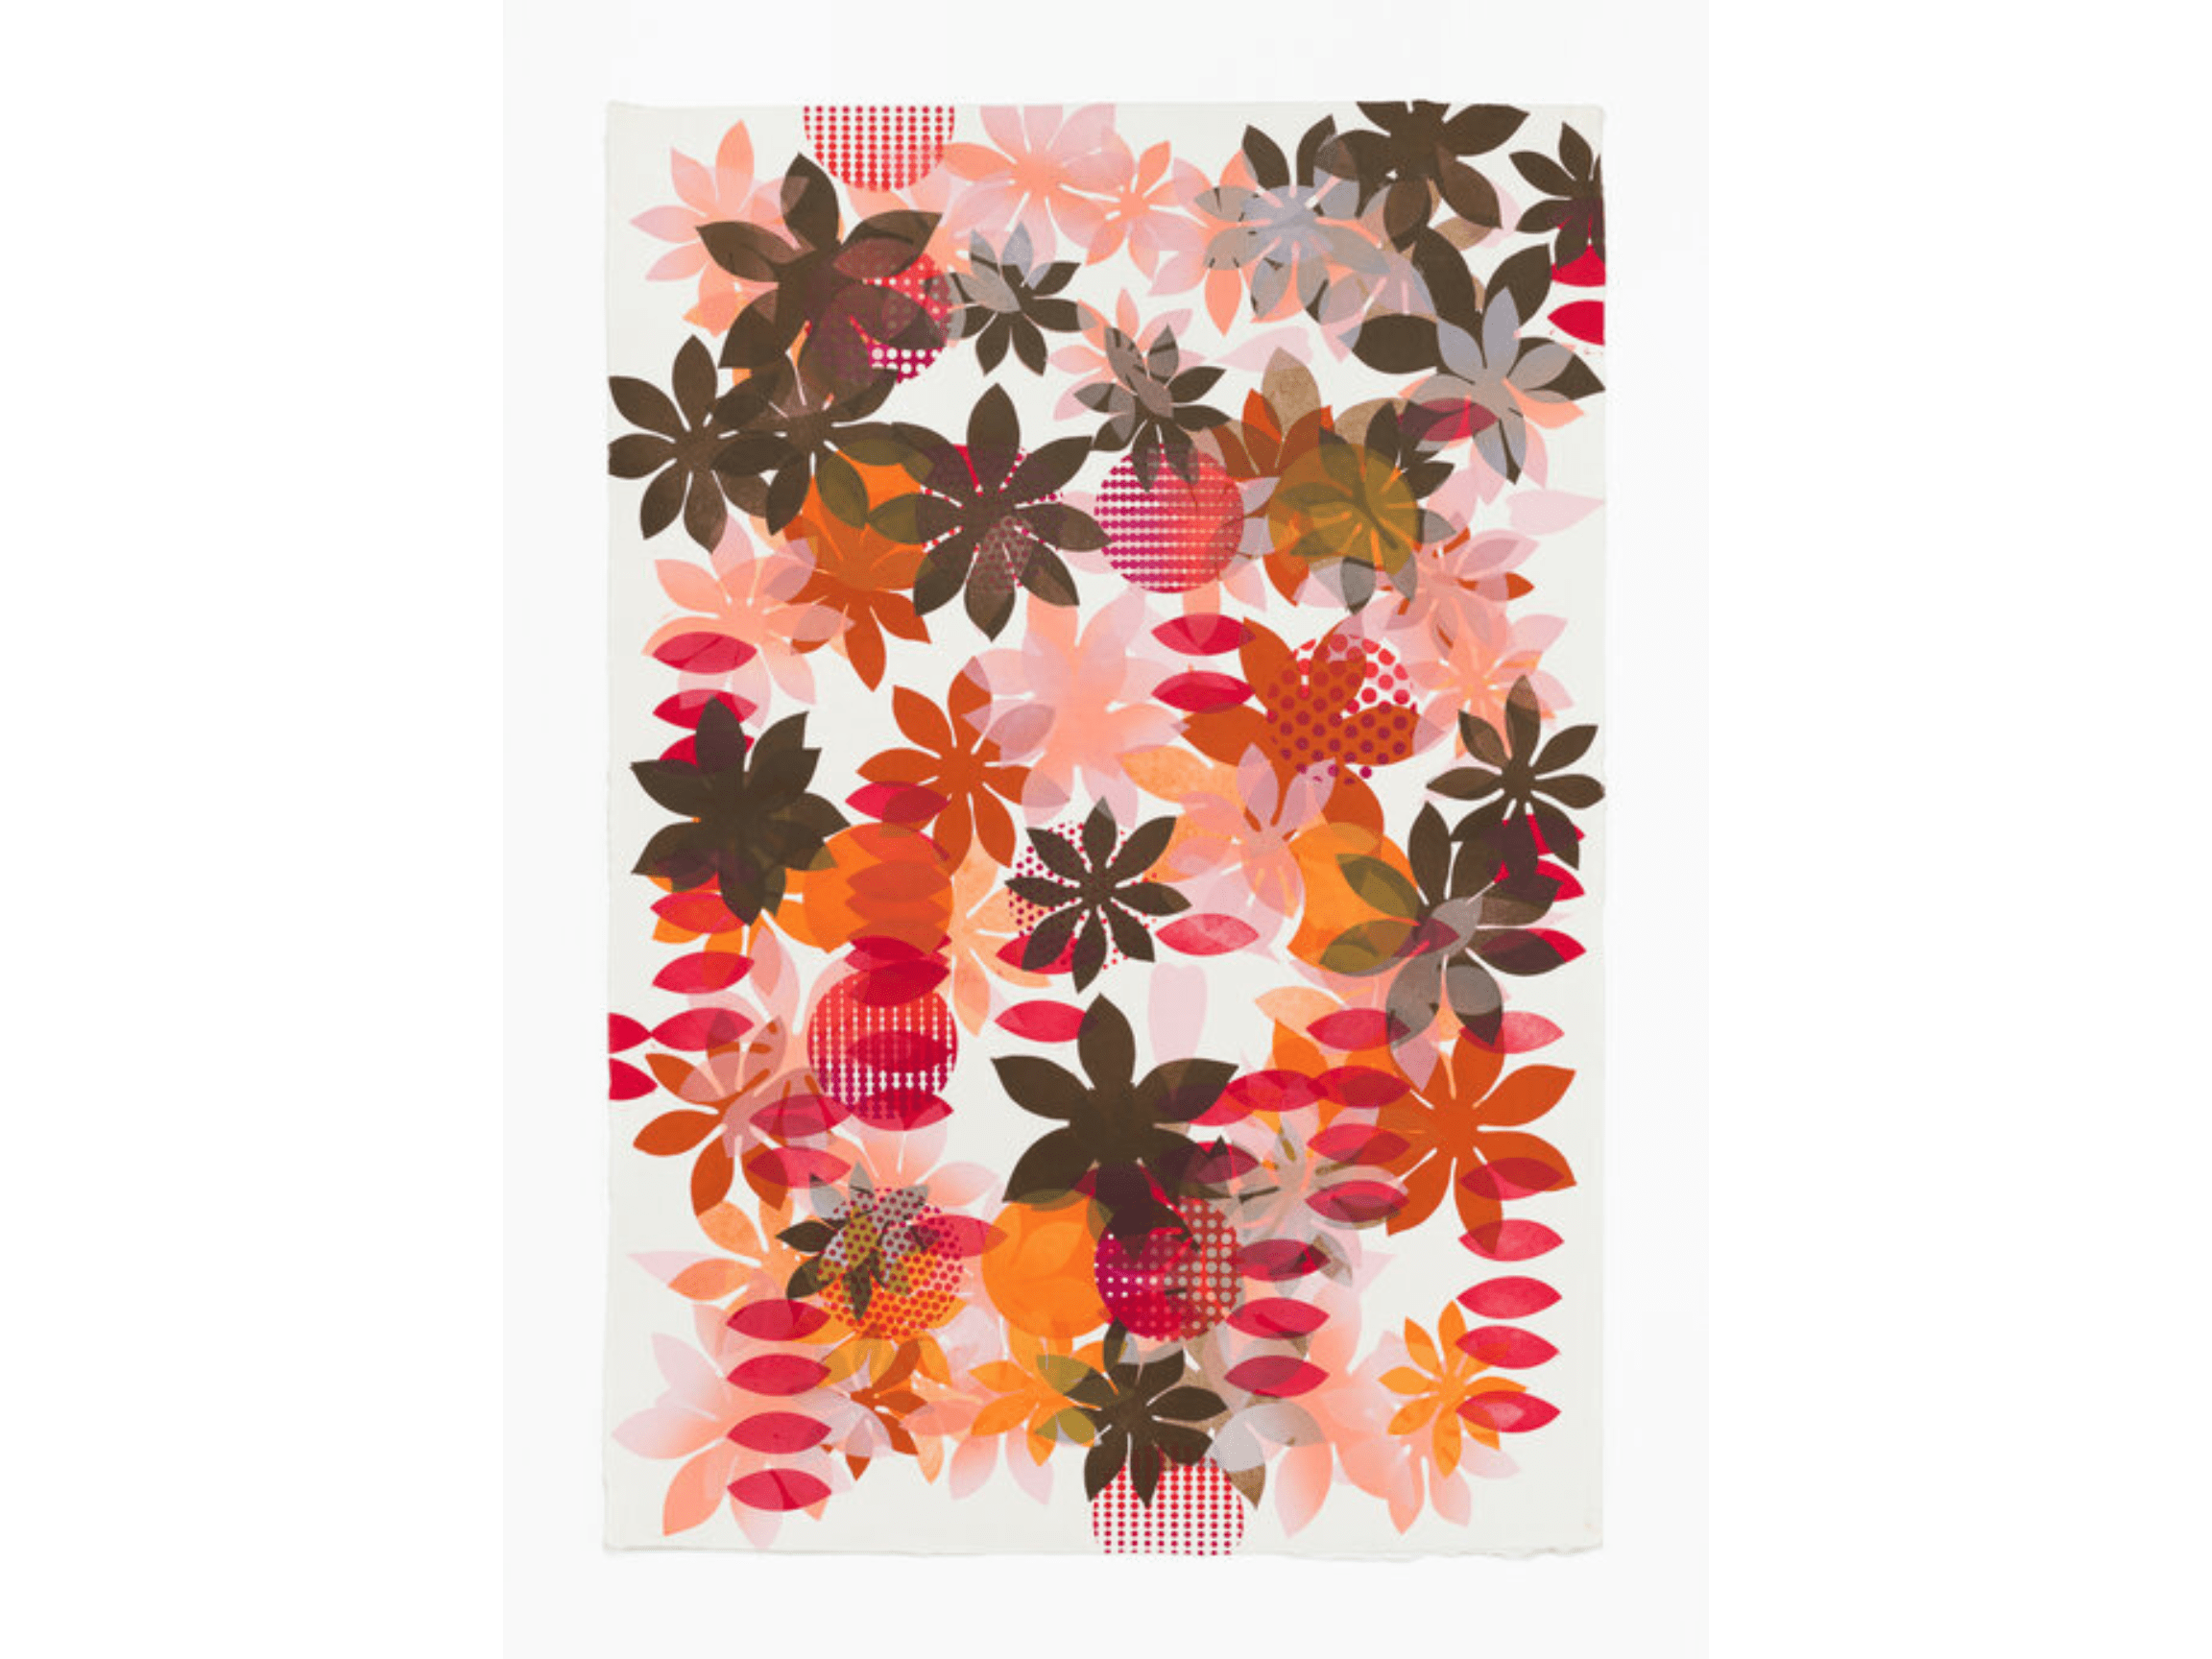 Overlayed floral shapes, colored using rich, earthly reds, browns, yellows, and pinks, blurring the line between two- and three-dimensional.